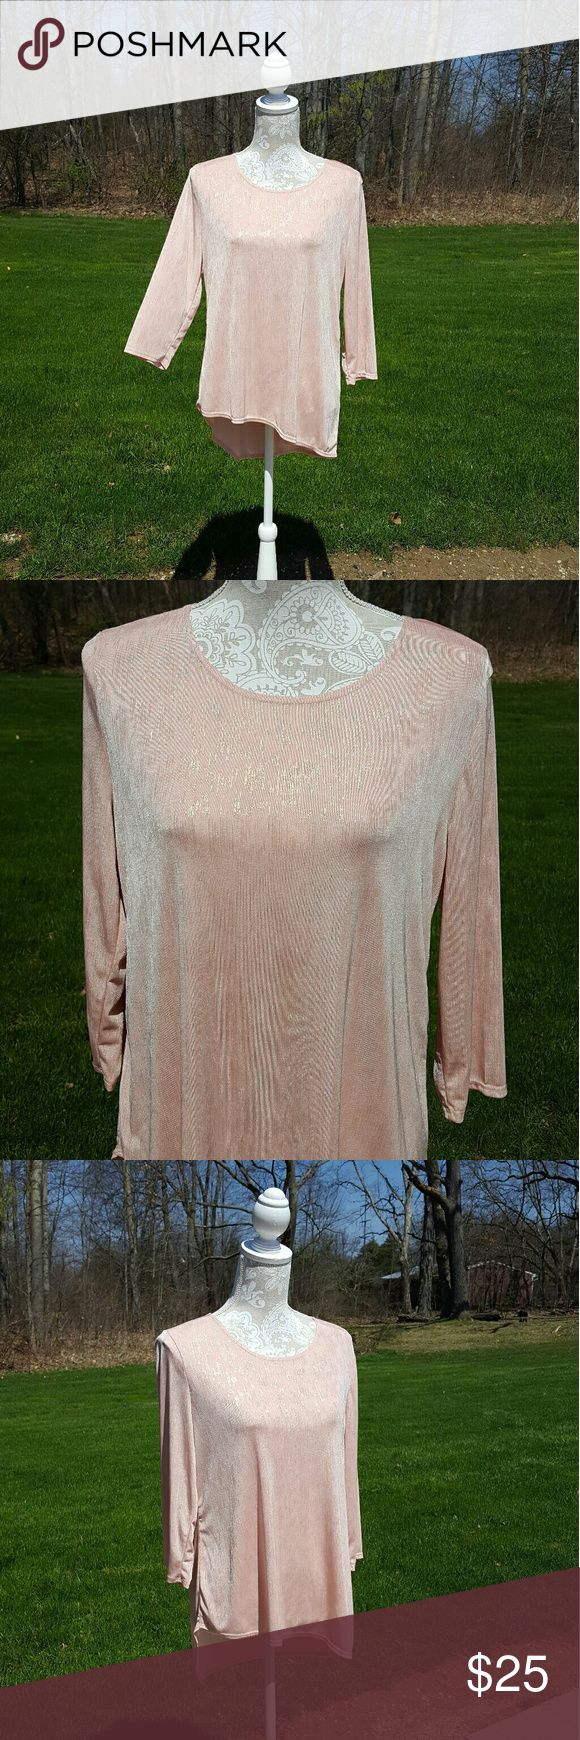 Nwt Chicos Traveler pink and gold long sleeve top New with tags Never worn Chicos size 1 Size small Long sleeves Thin material  Gold glitter throughout  Loose fit Unsymmetrical bottom hem Great for spring  No Trades Chico's Tops Tees - Long Sleeve